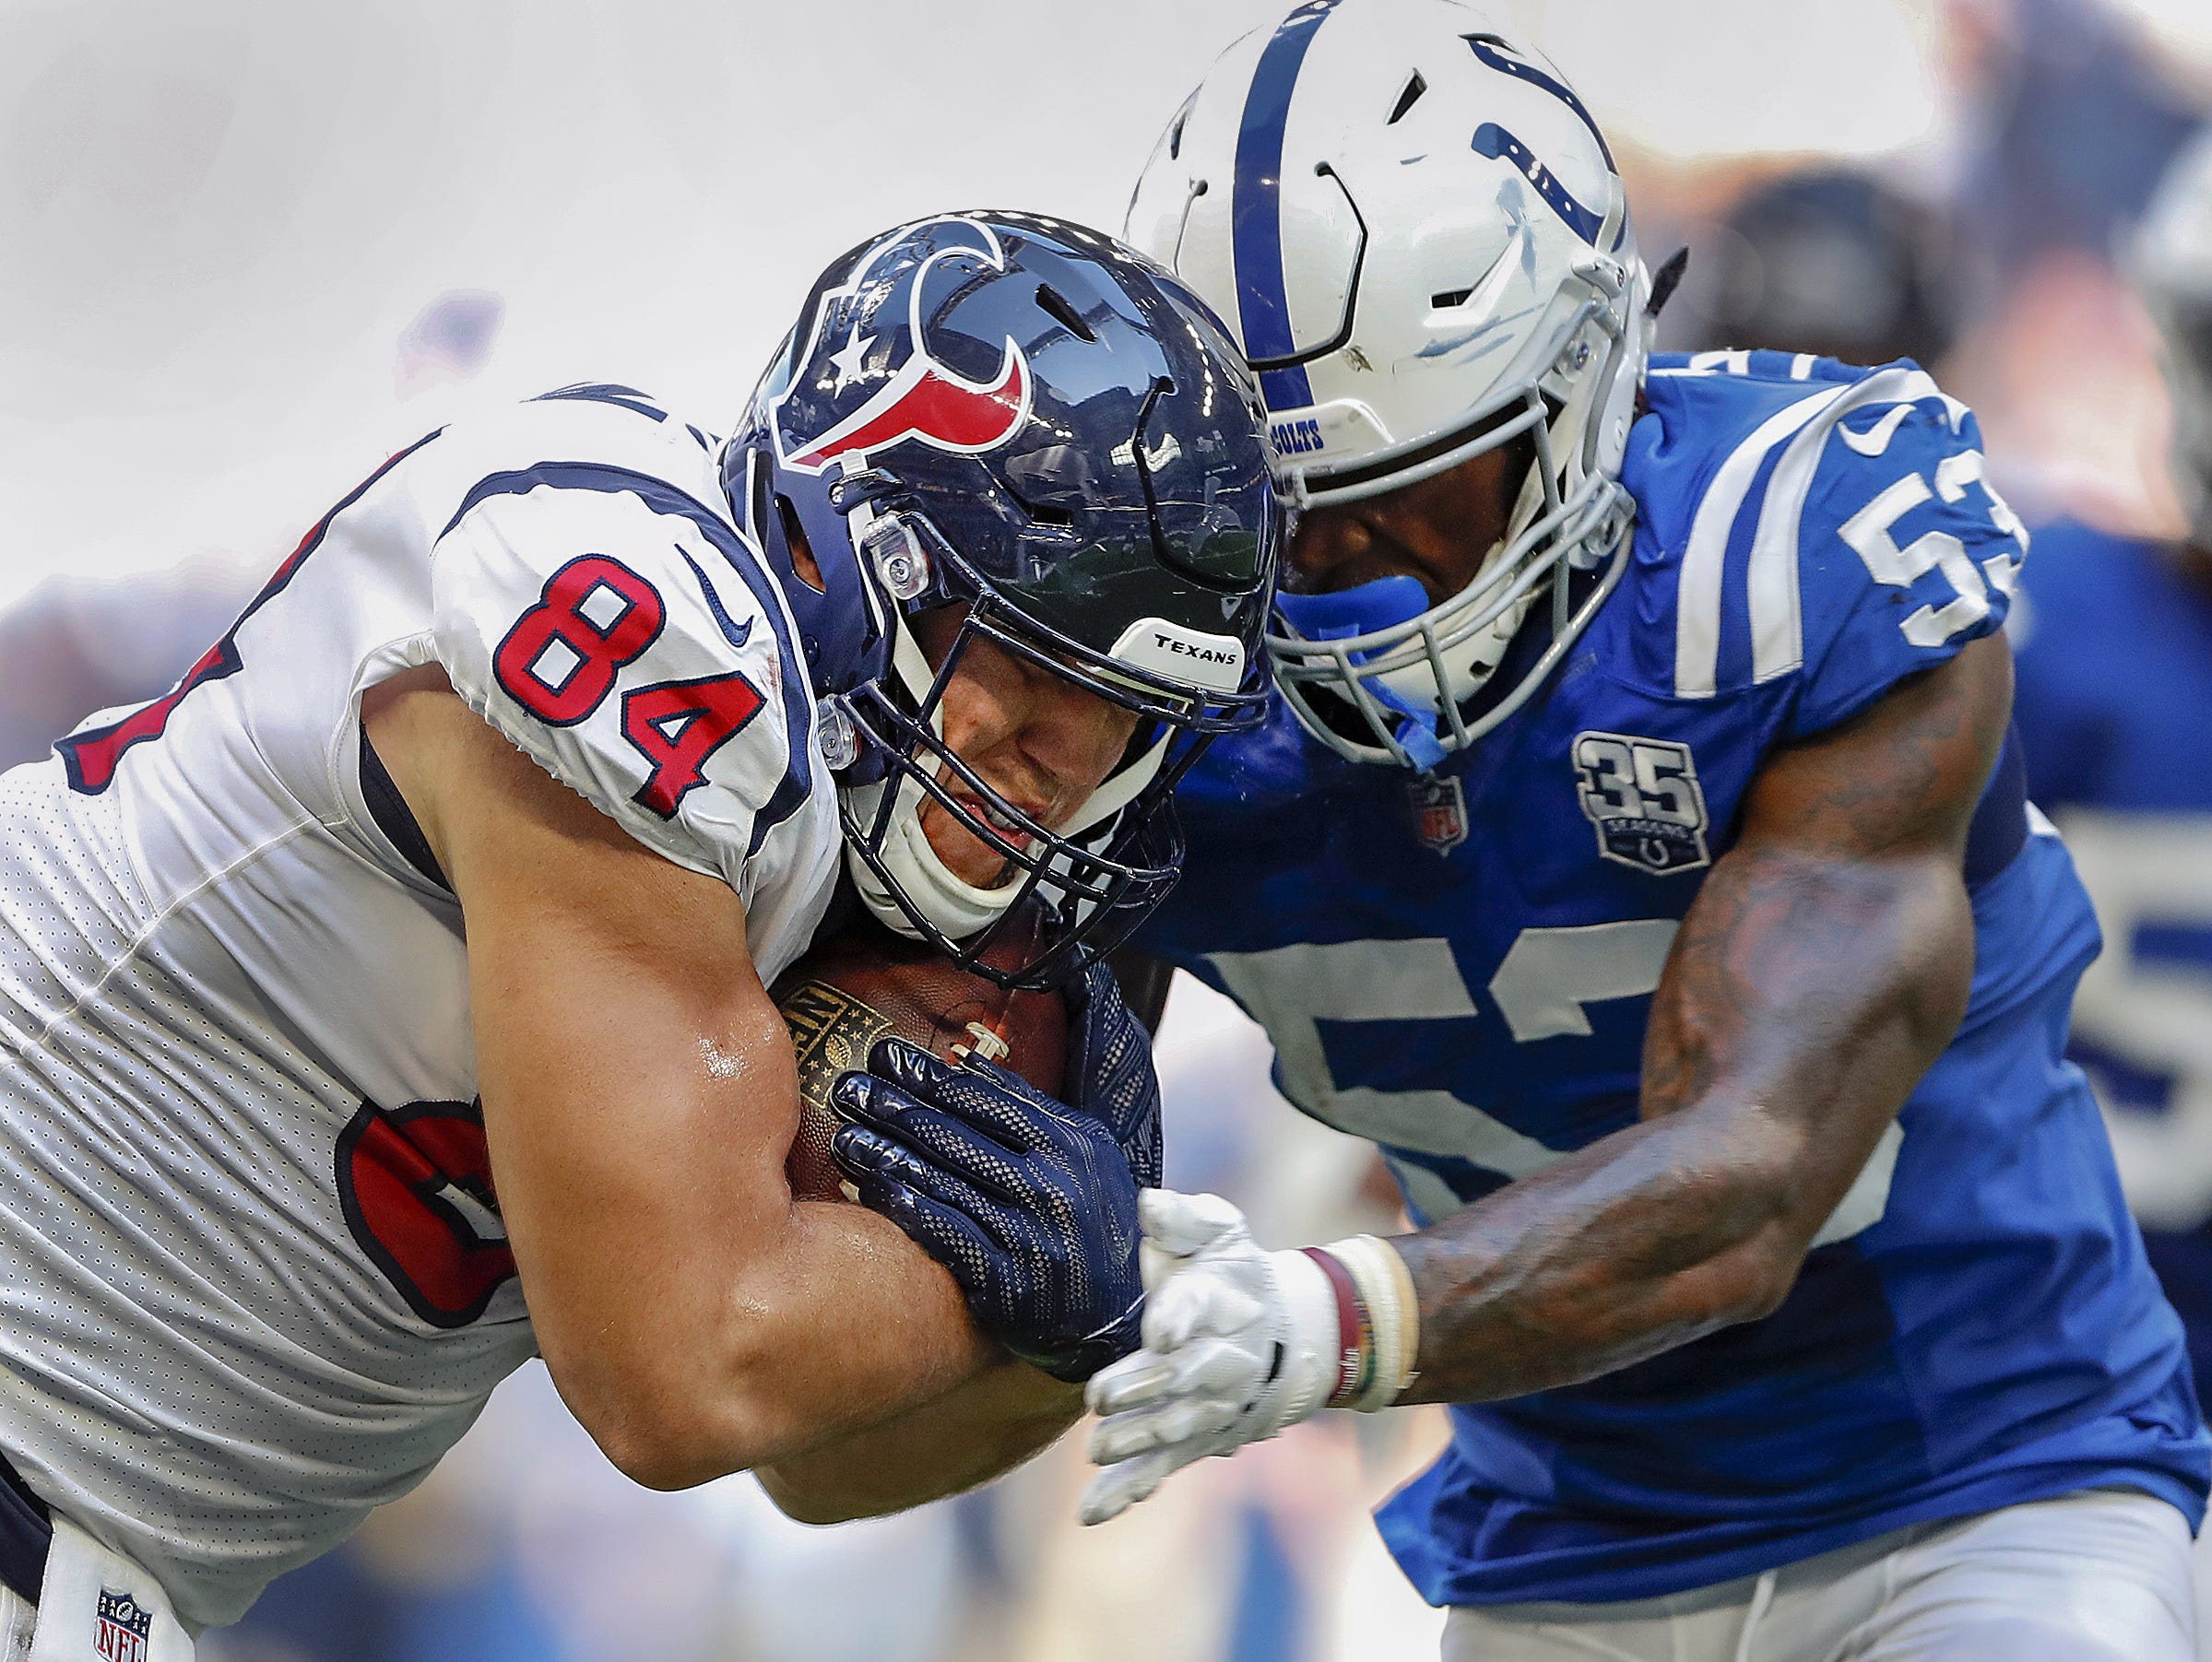 Indianapolis Colts linebacker Darius Leonard (53) hits Houston Texans tight end Ryan Griffin (84) in the second half of their game on Sunday, Sept. 30, 2018. The Indianapolis Colts lost 37-34 in overtime to the Houston Texans.